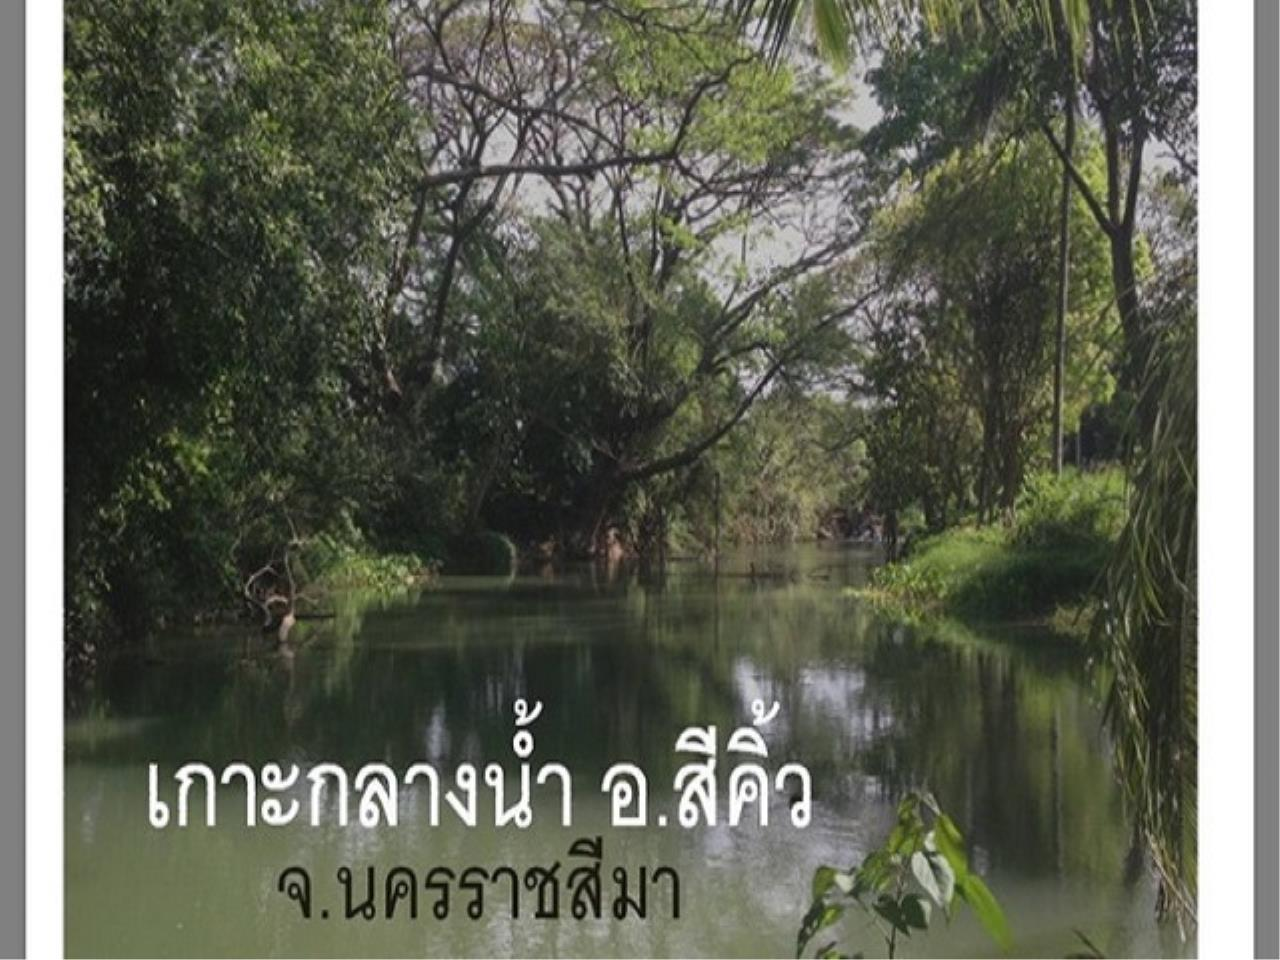 Forbest Properties Agency's 38228-Land for sale, in Amphoe sikhio, Nakhon Ratchasima, 13 rai 351 sq.wa.  3